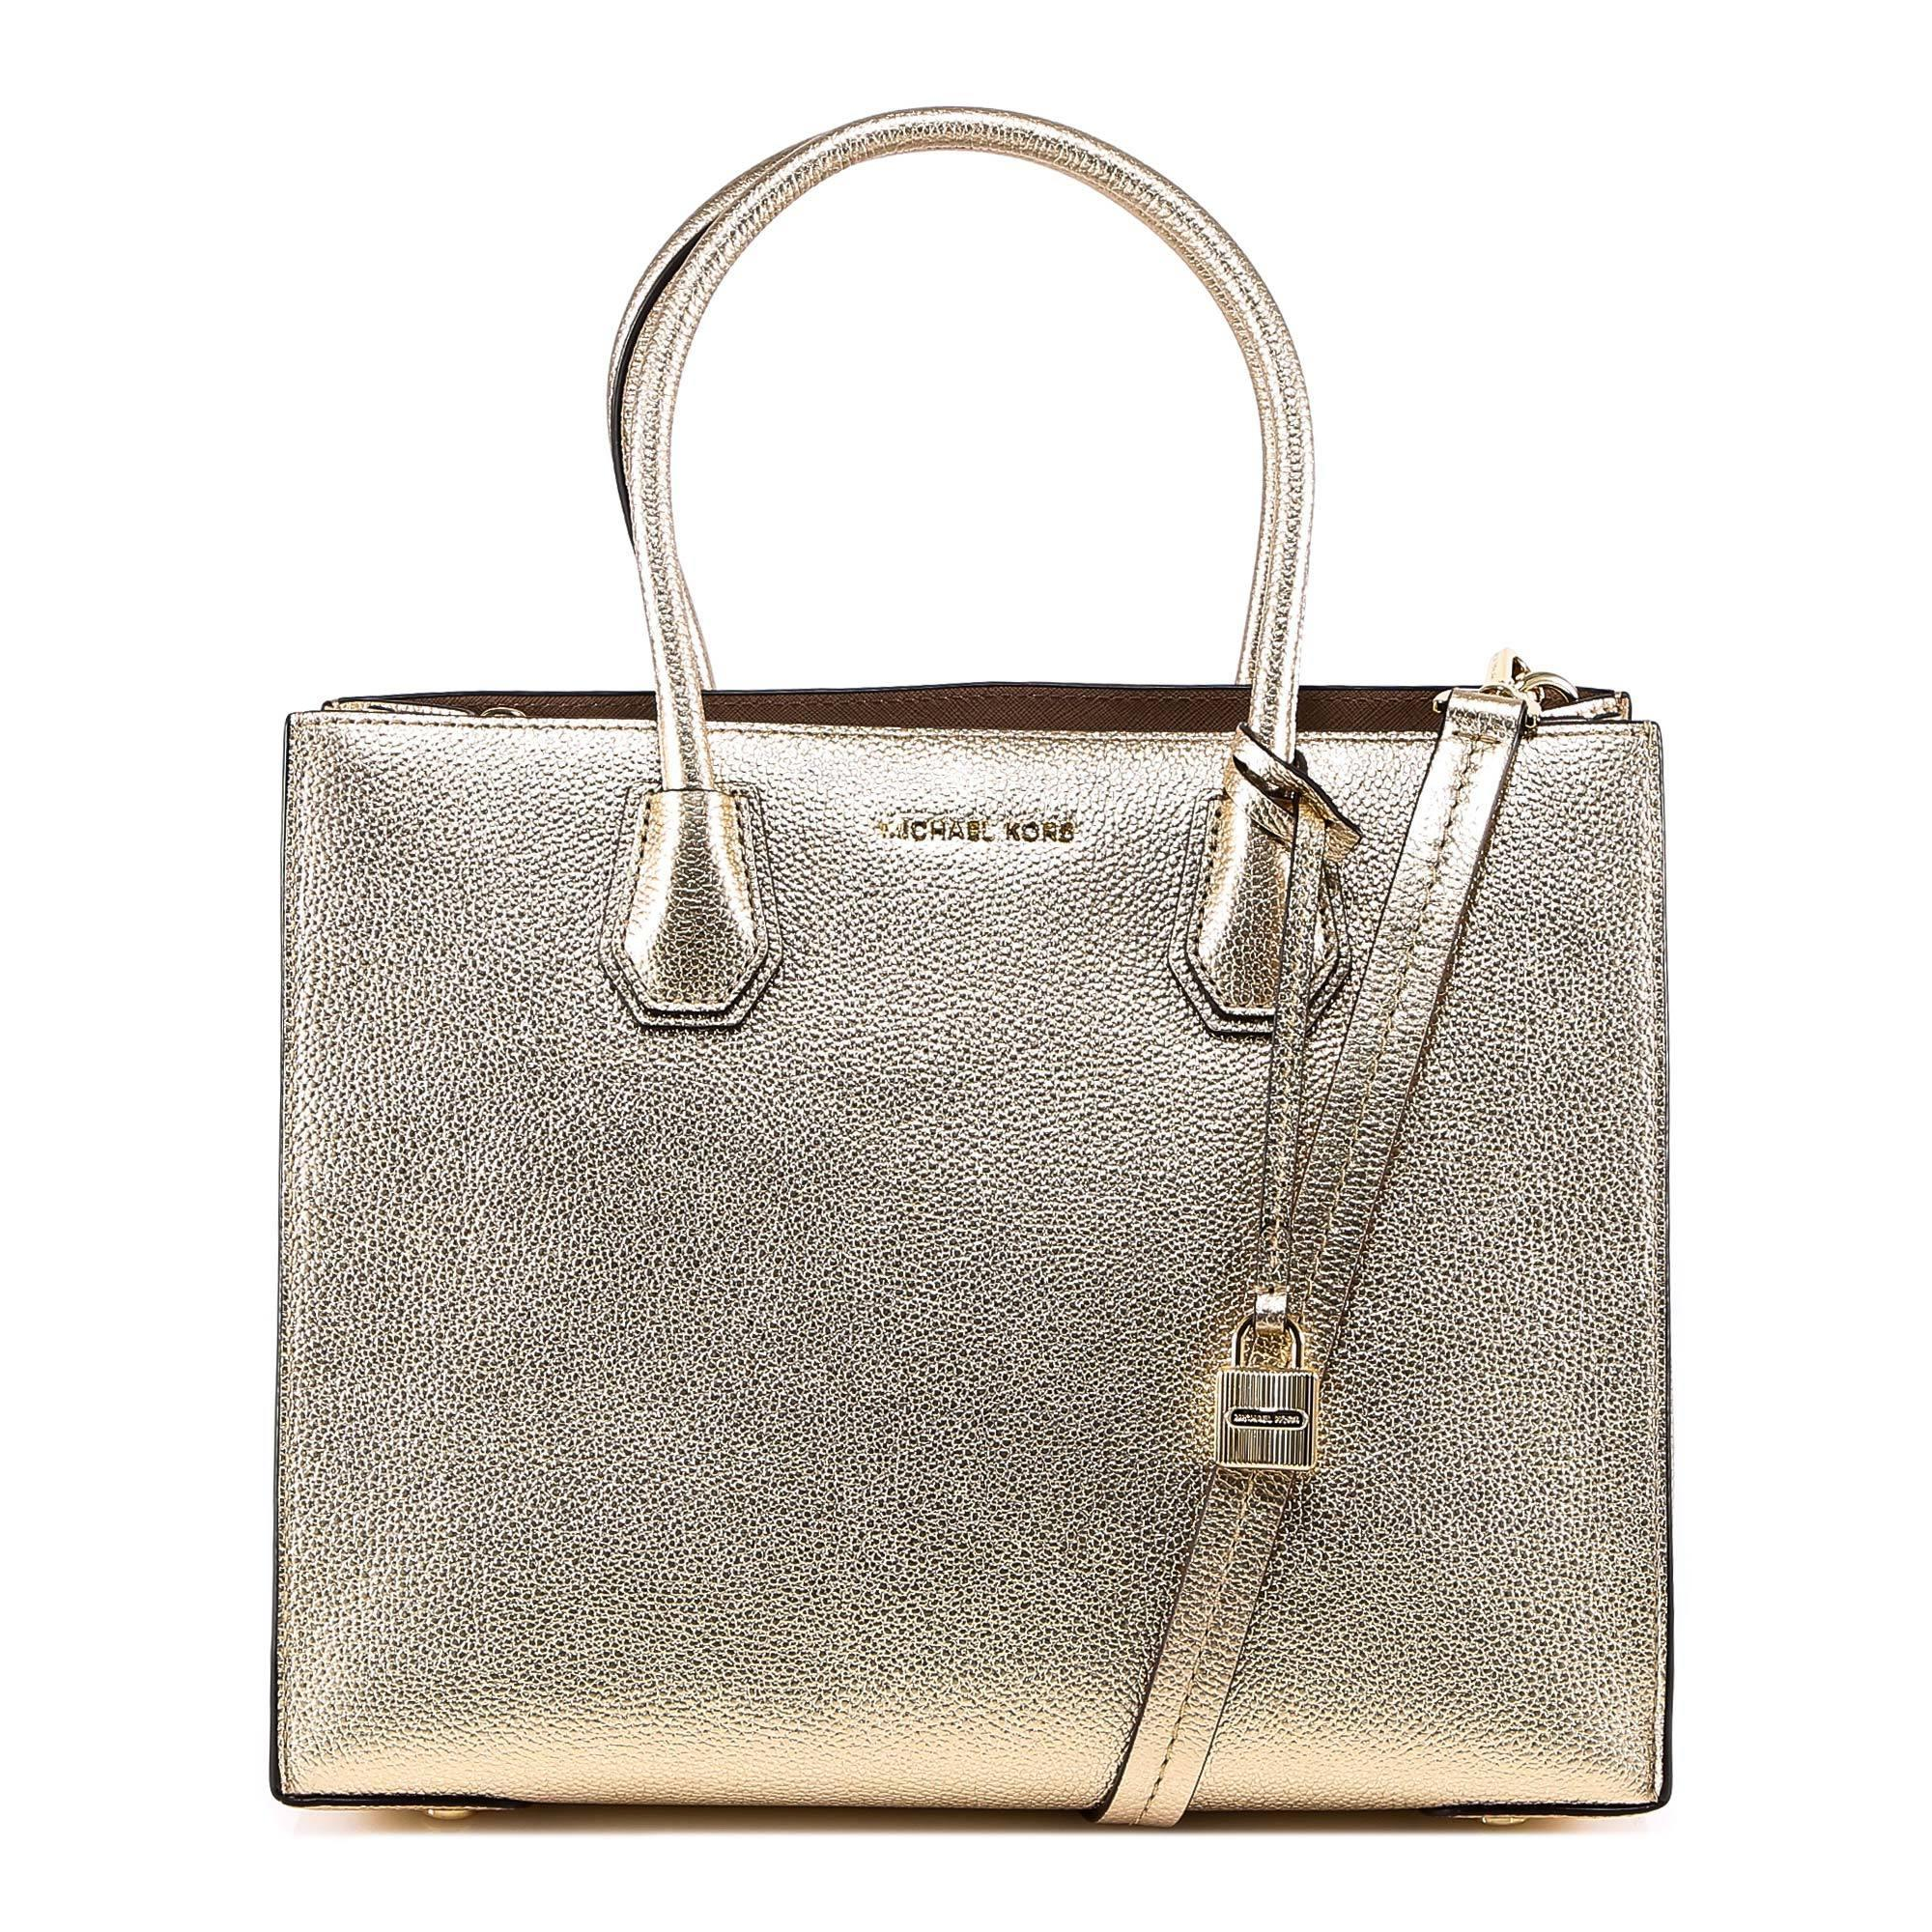 6437c1afefc1 MICHAEL Michael Kors Mercer Large Metallic Leather Tote in Metallic ...